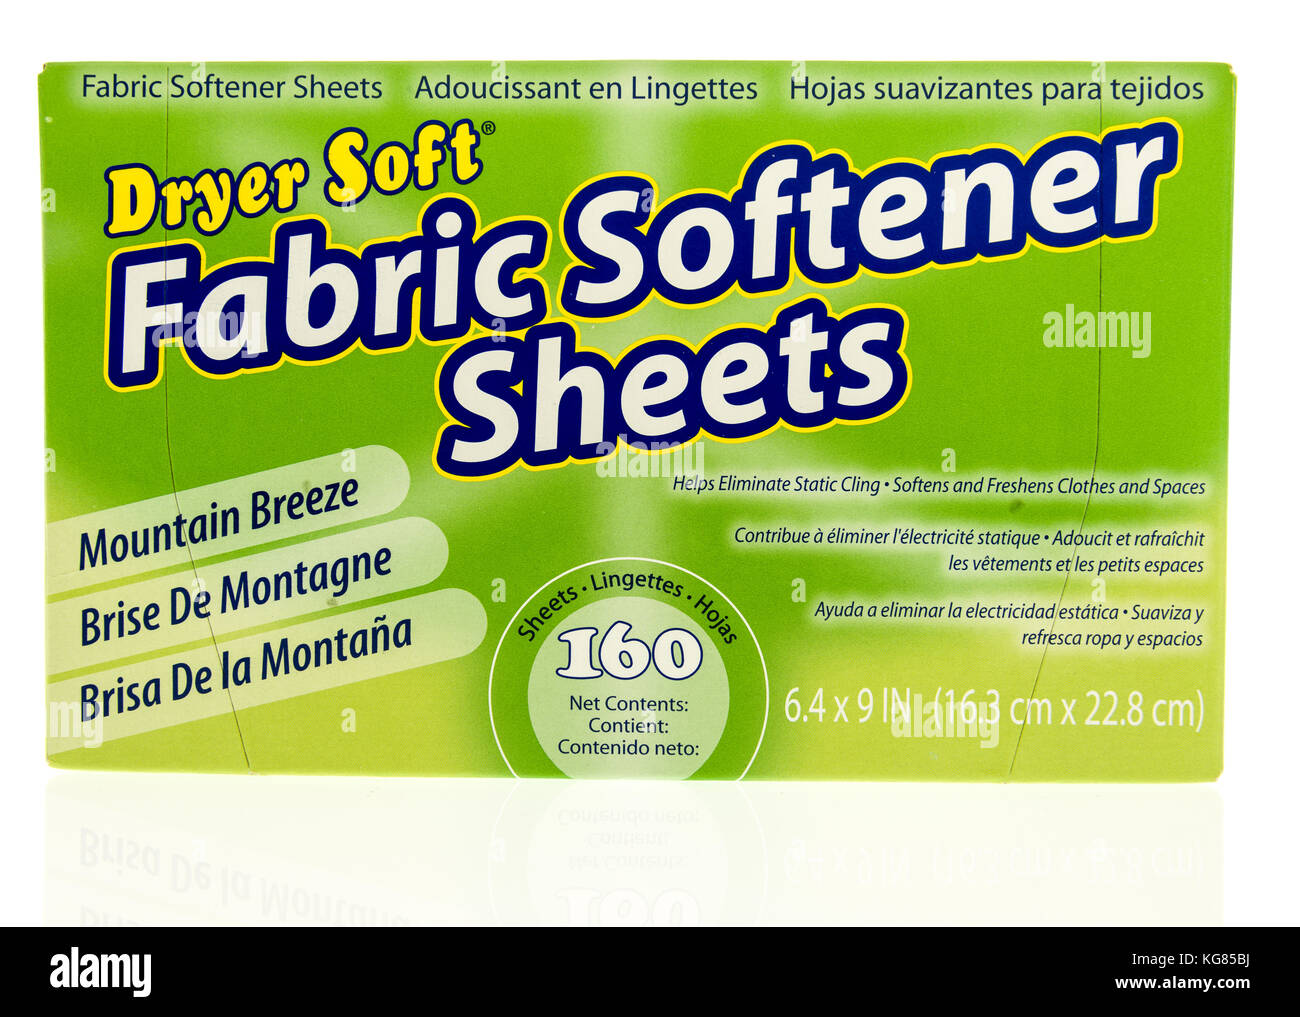 Winneconne, WI - 31 October 2017:  A container of Dryer Soft fabric softner sheets on an isolated background. Stock Photo